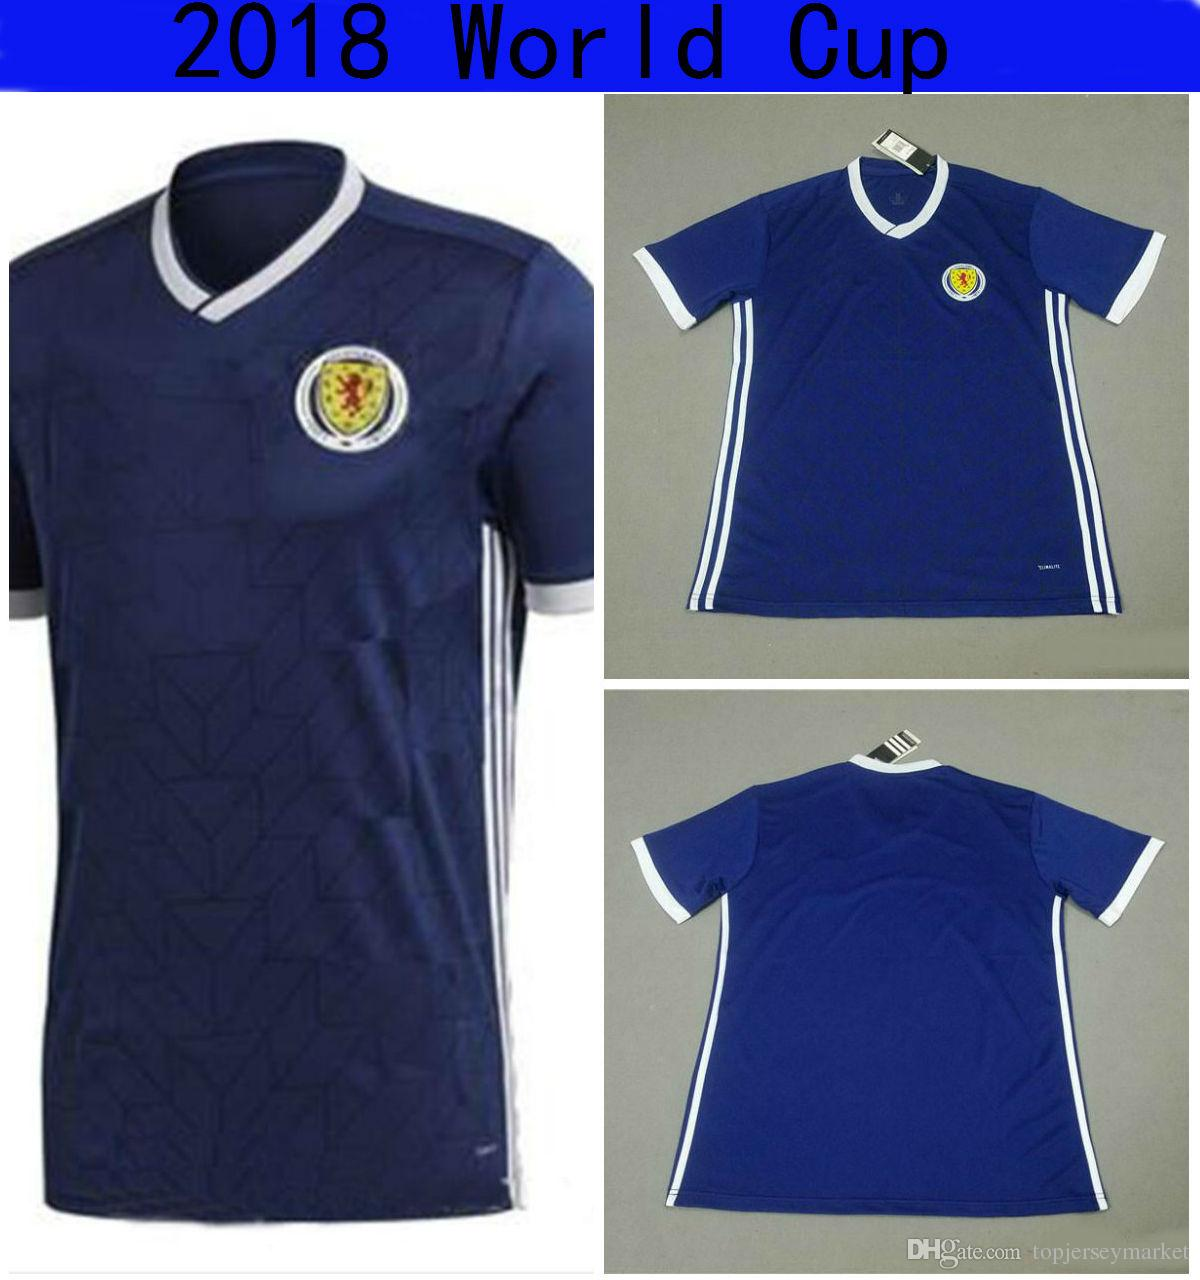 aaa scotland tracksuit 2018 world cup t shirt top thailand quality scotland home replica jersey nati